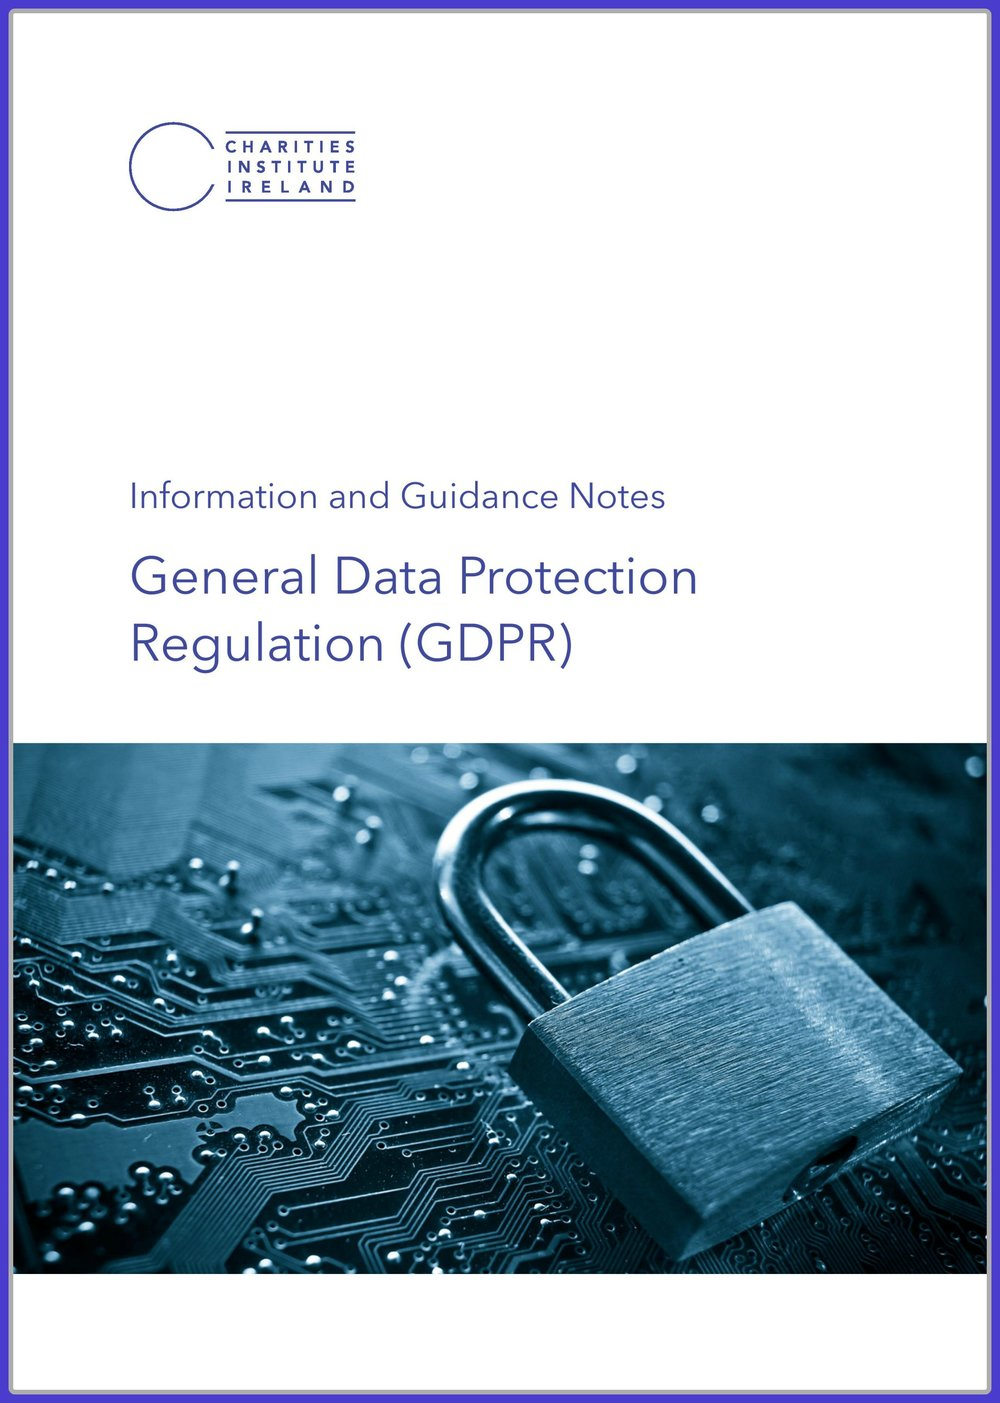 - This document contains an overview of the GDPR regulation outlining the lawful basis of processing, information on the provision of consent, legitimate interest, direct marketing and how charities can insure compliance.